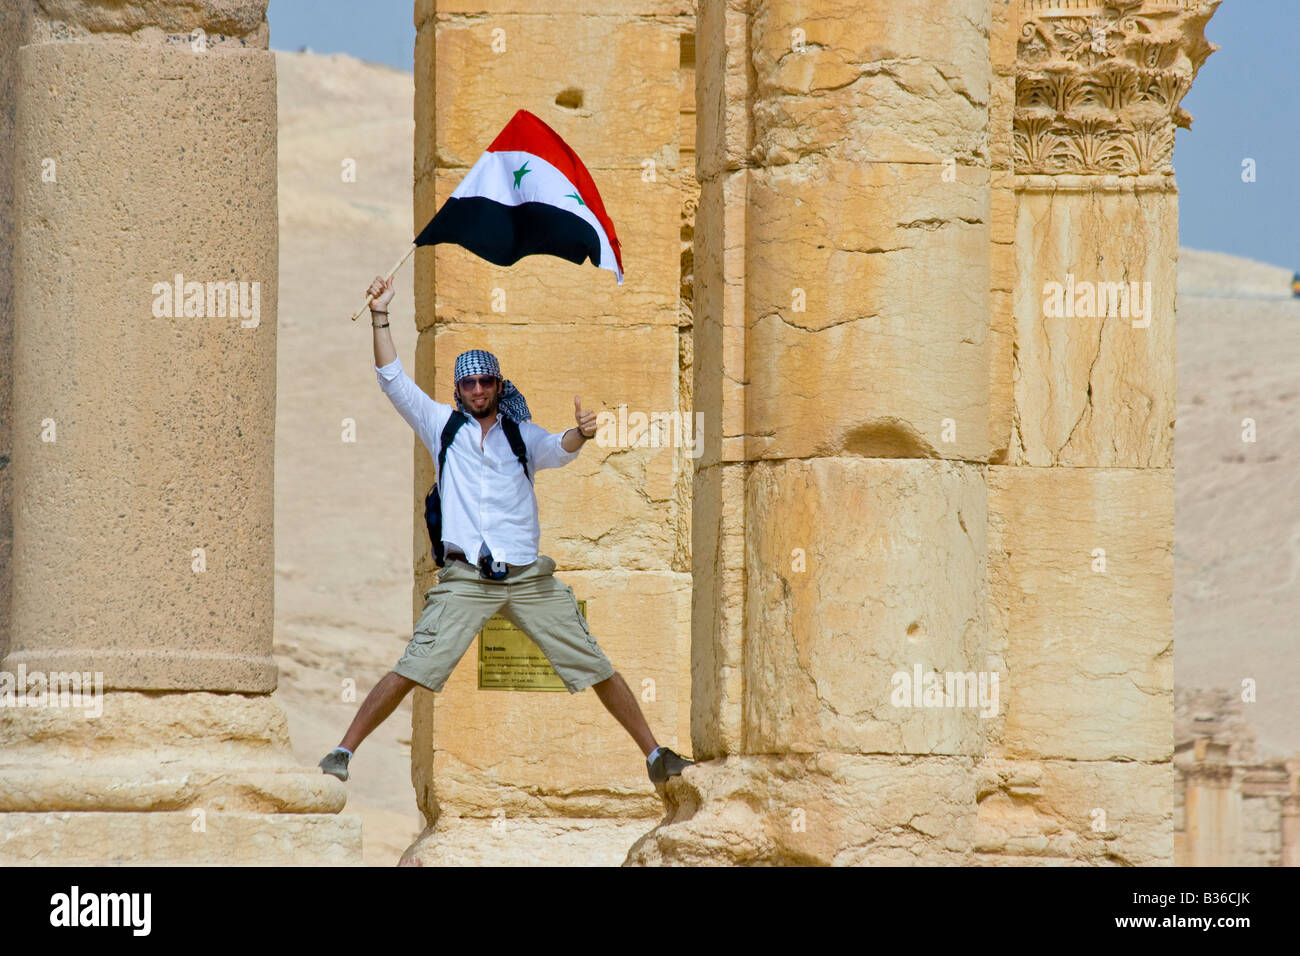 Tourist Waving A Syrian Flag At The Roman Ruins Of Palmyra In Syria